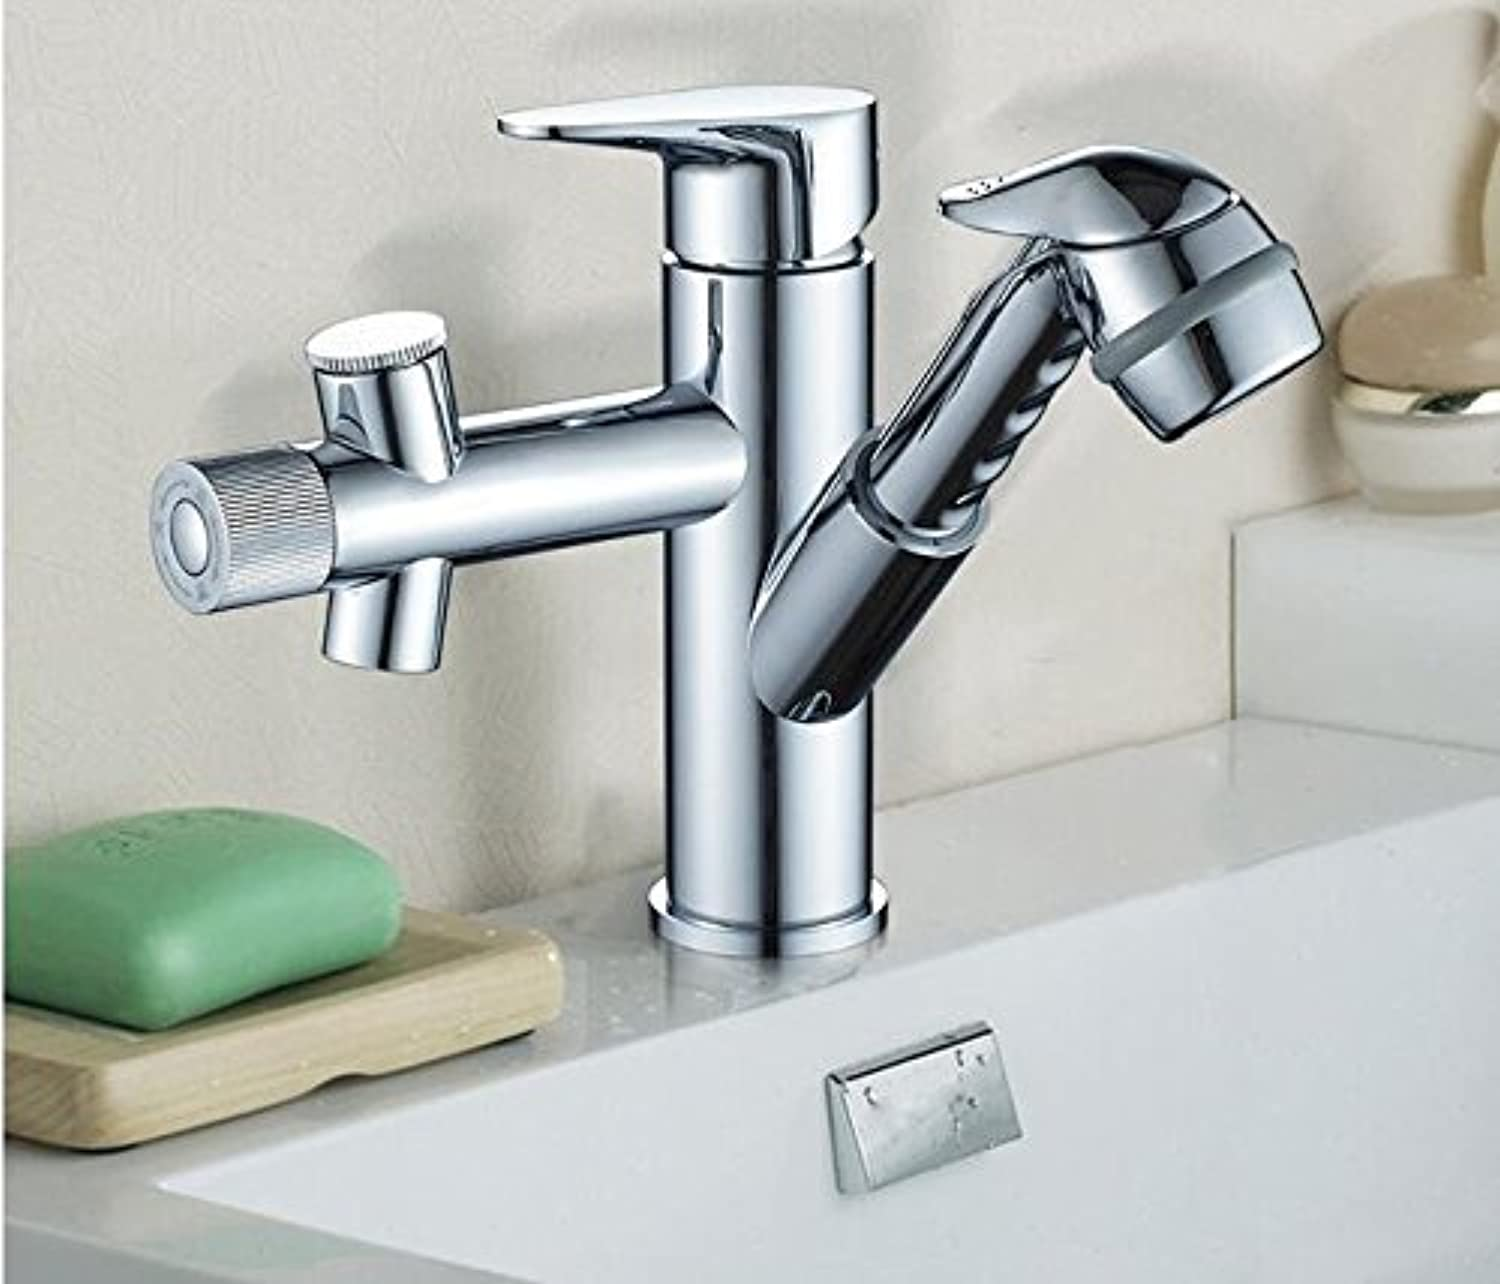 Makej Copper Bathroom Faucet Waterfall Pull Out Water Tap Wash Face Basin Mixer Taps Cold and Hot Chrome Toilet Faucet